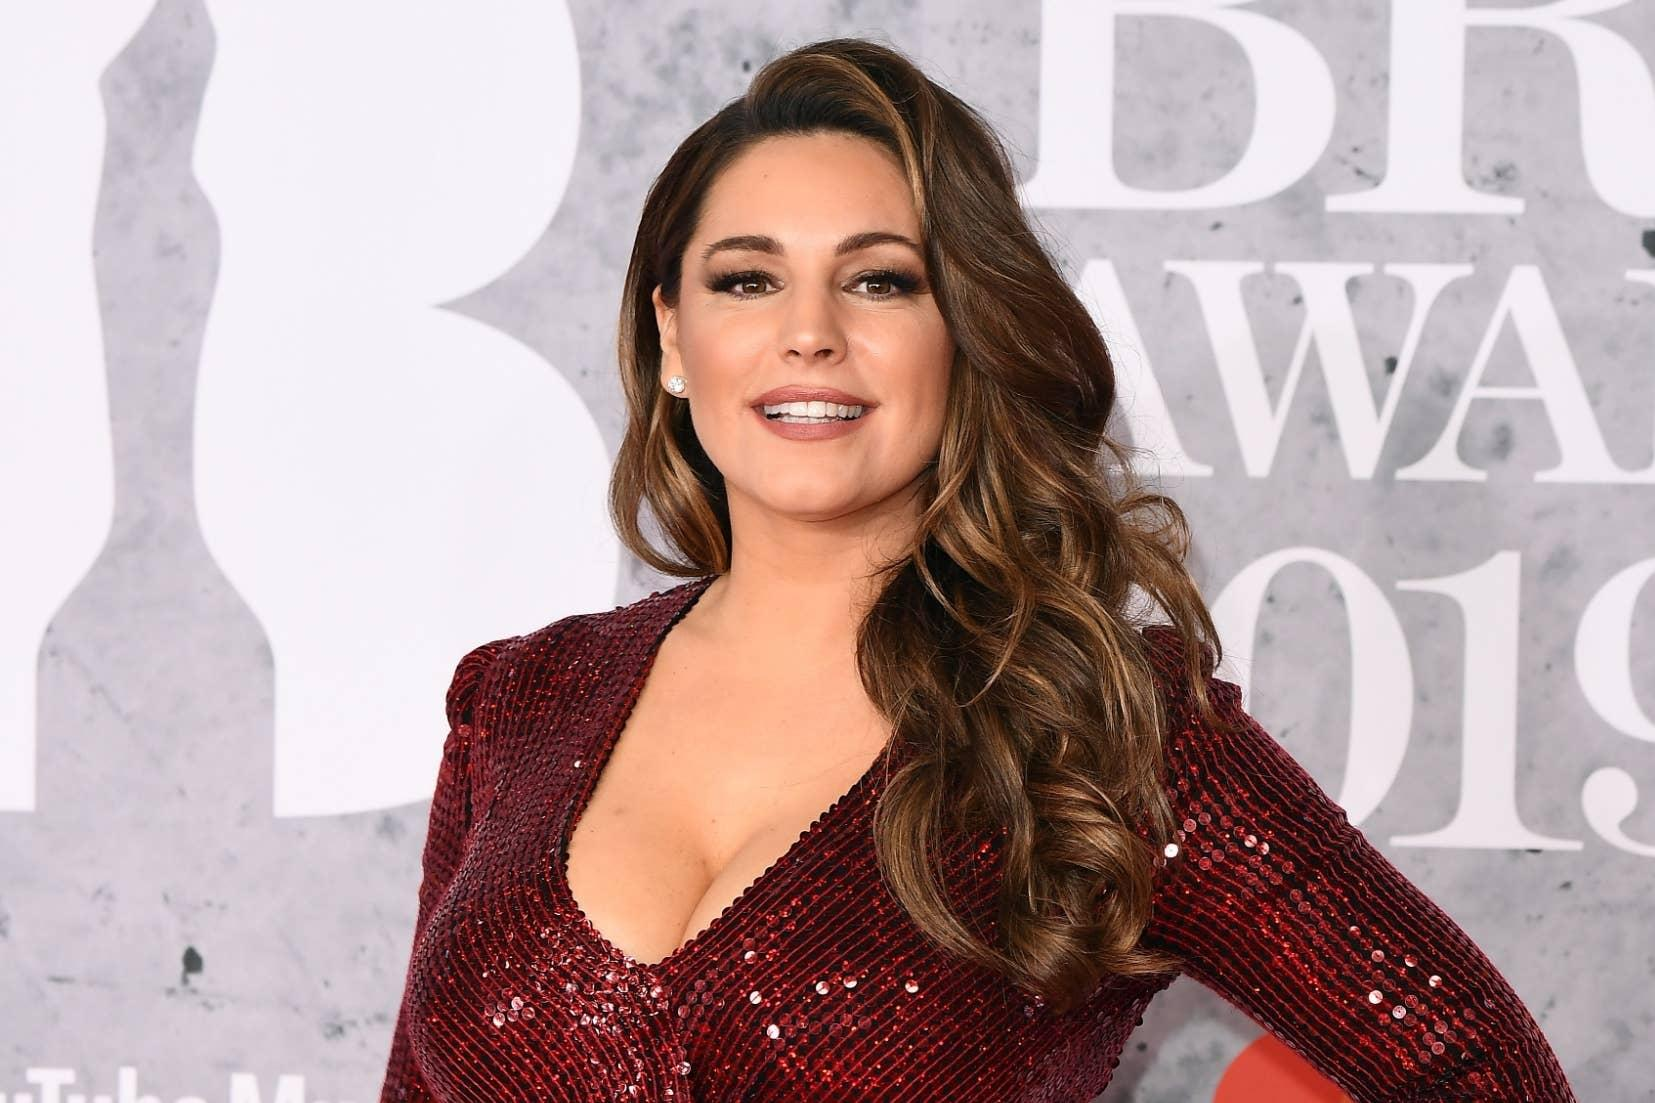 Kelly Brook British Model, Actress and TV Personality